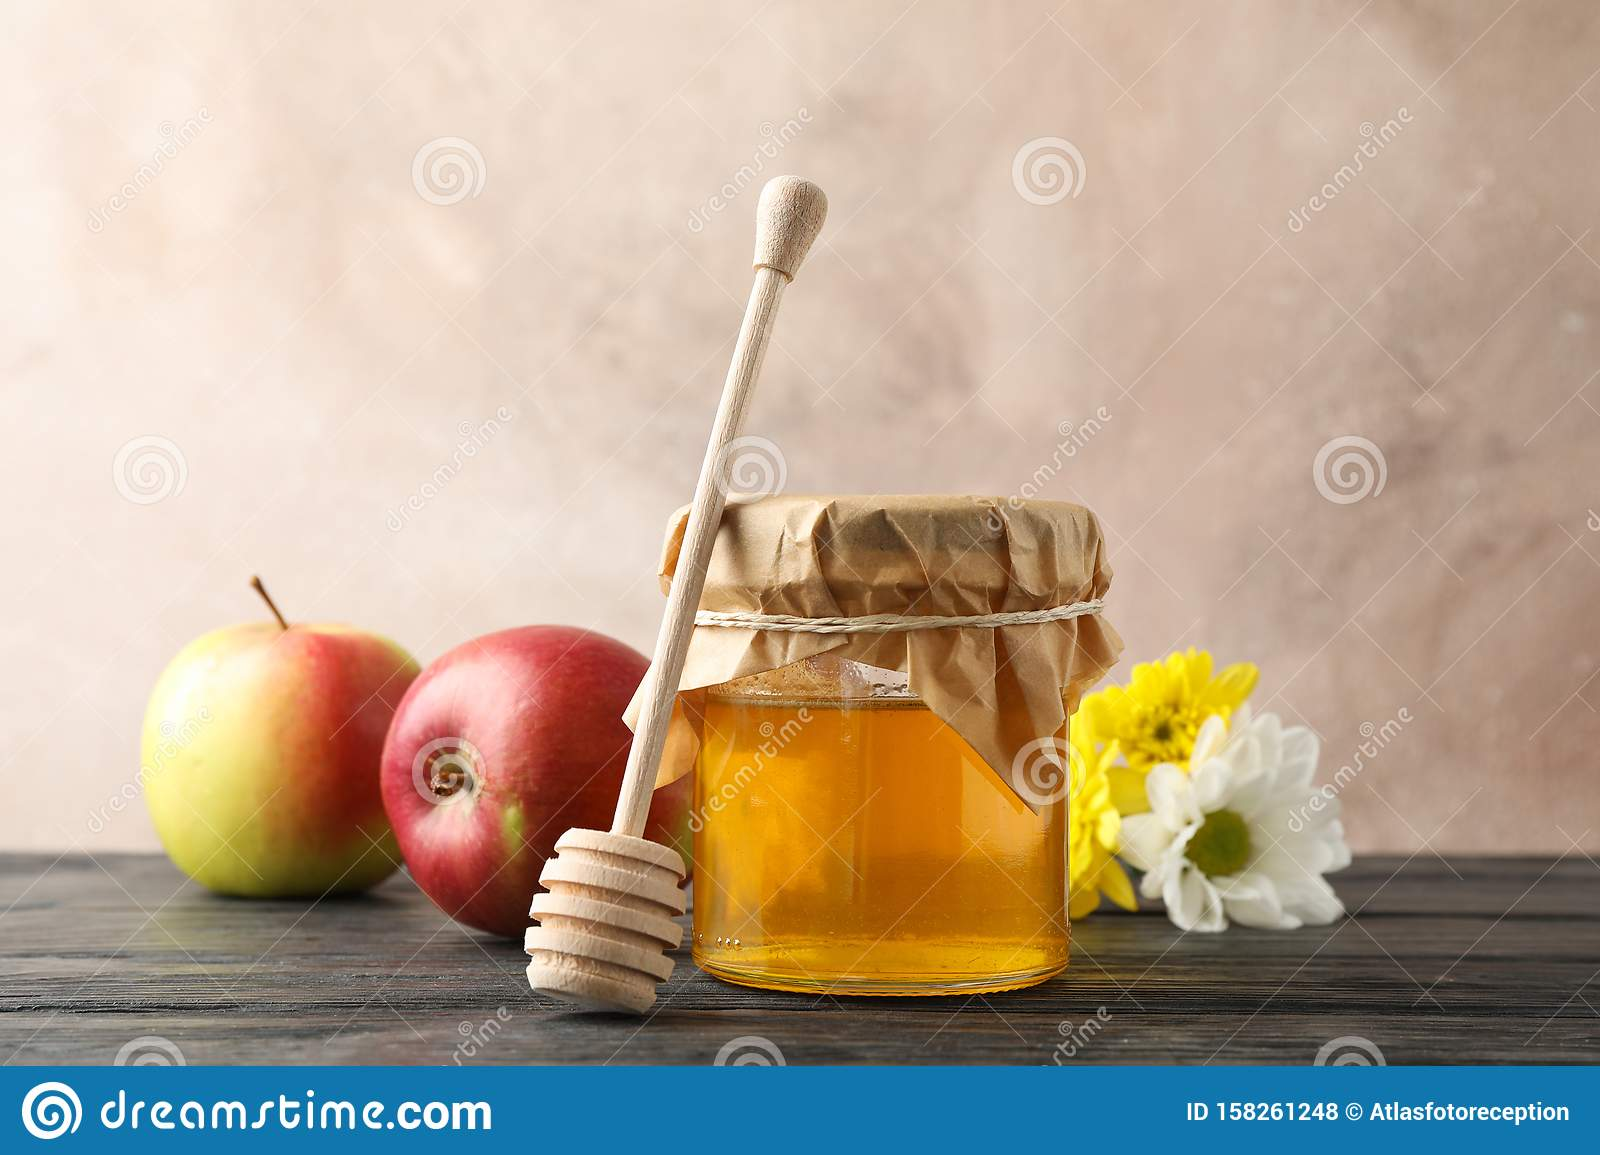 Glass jar with honey, dipper, apples and flowers on wooden background